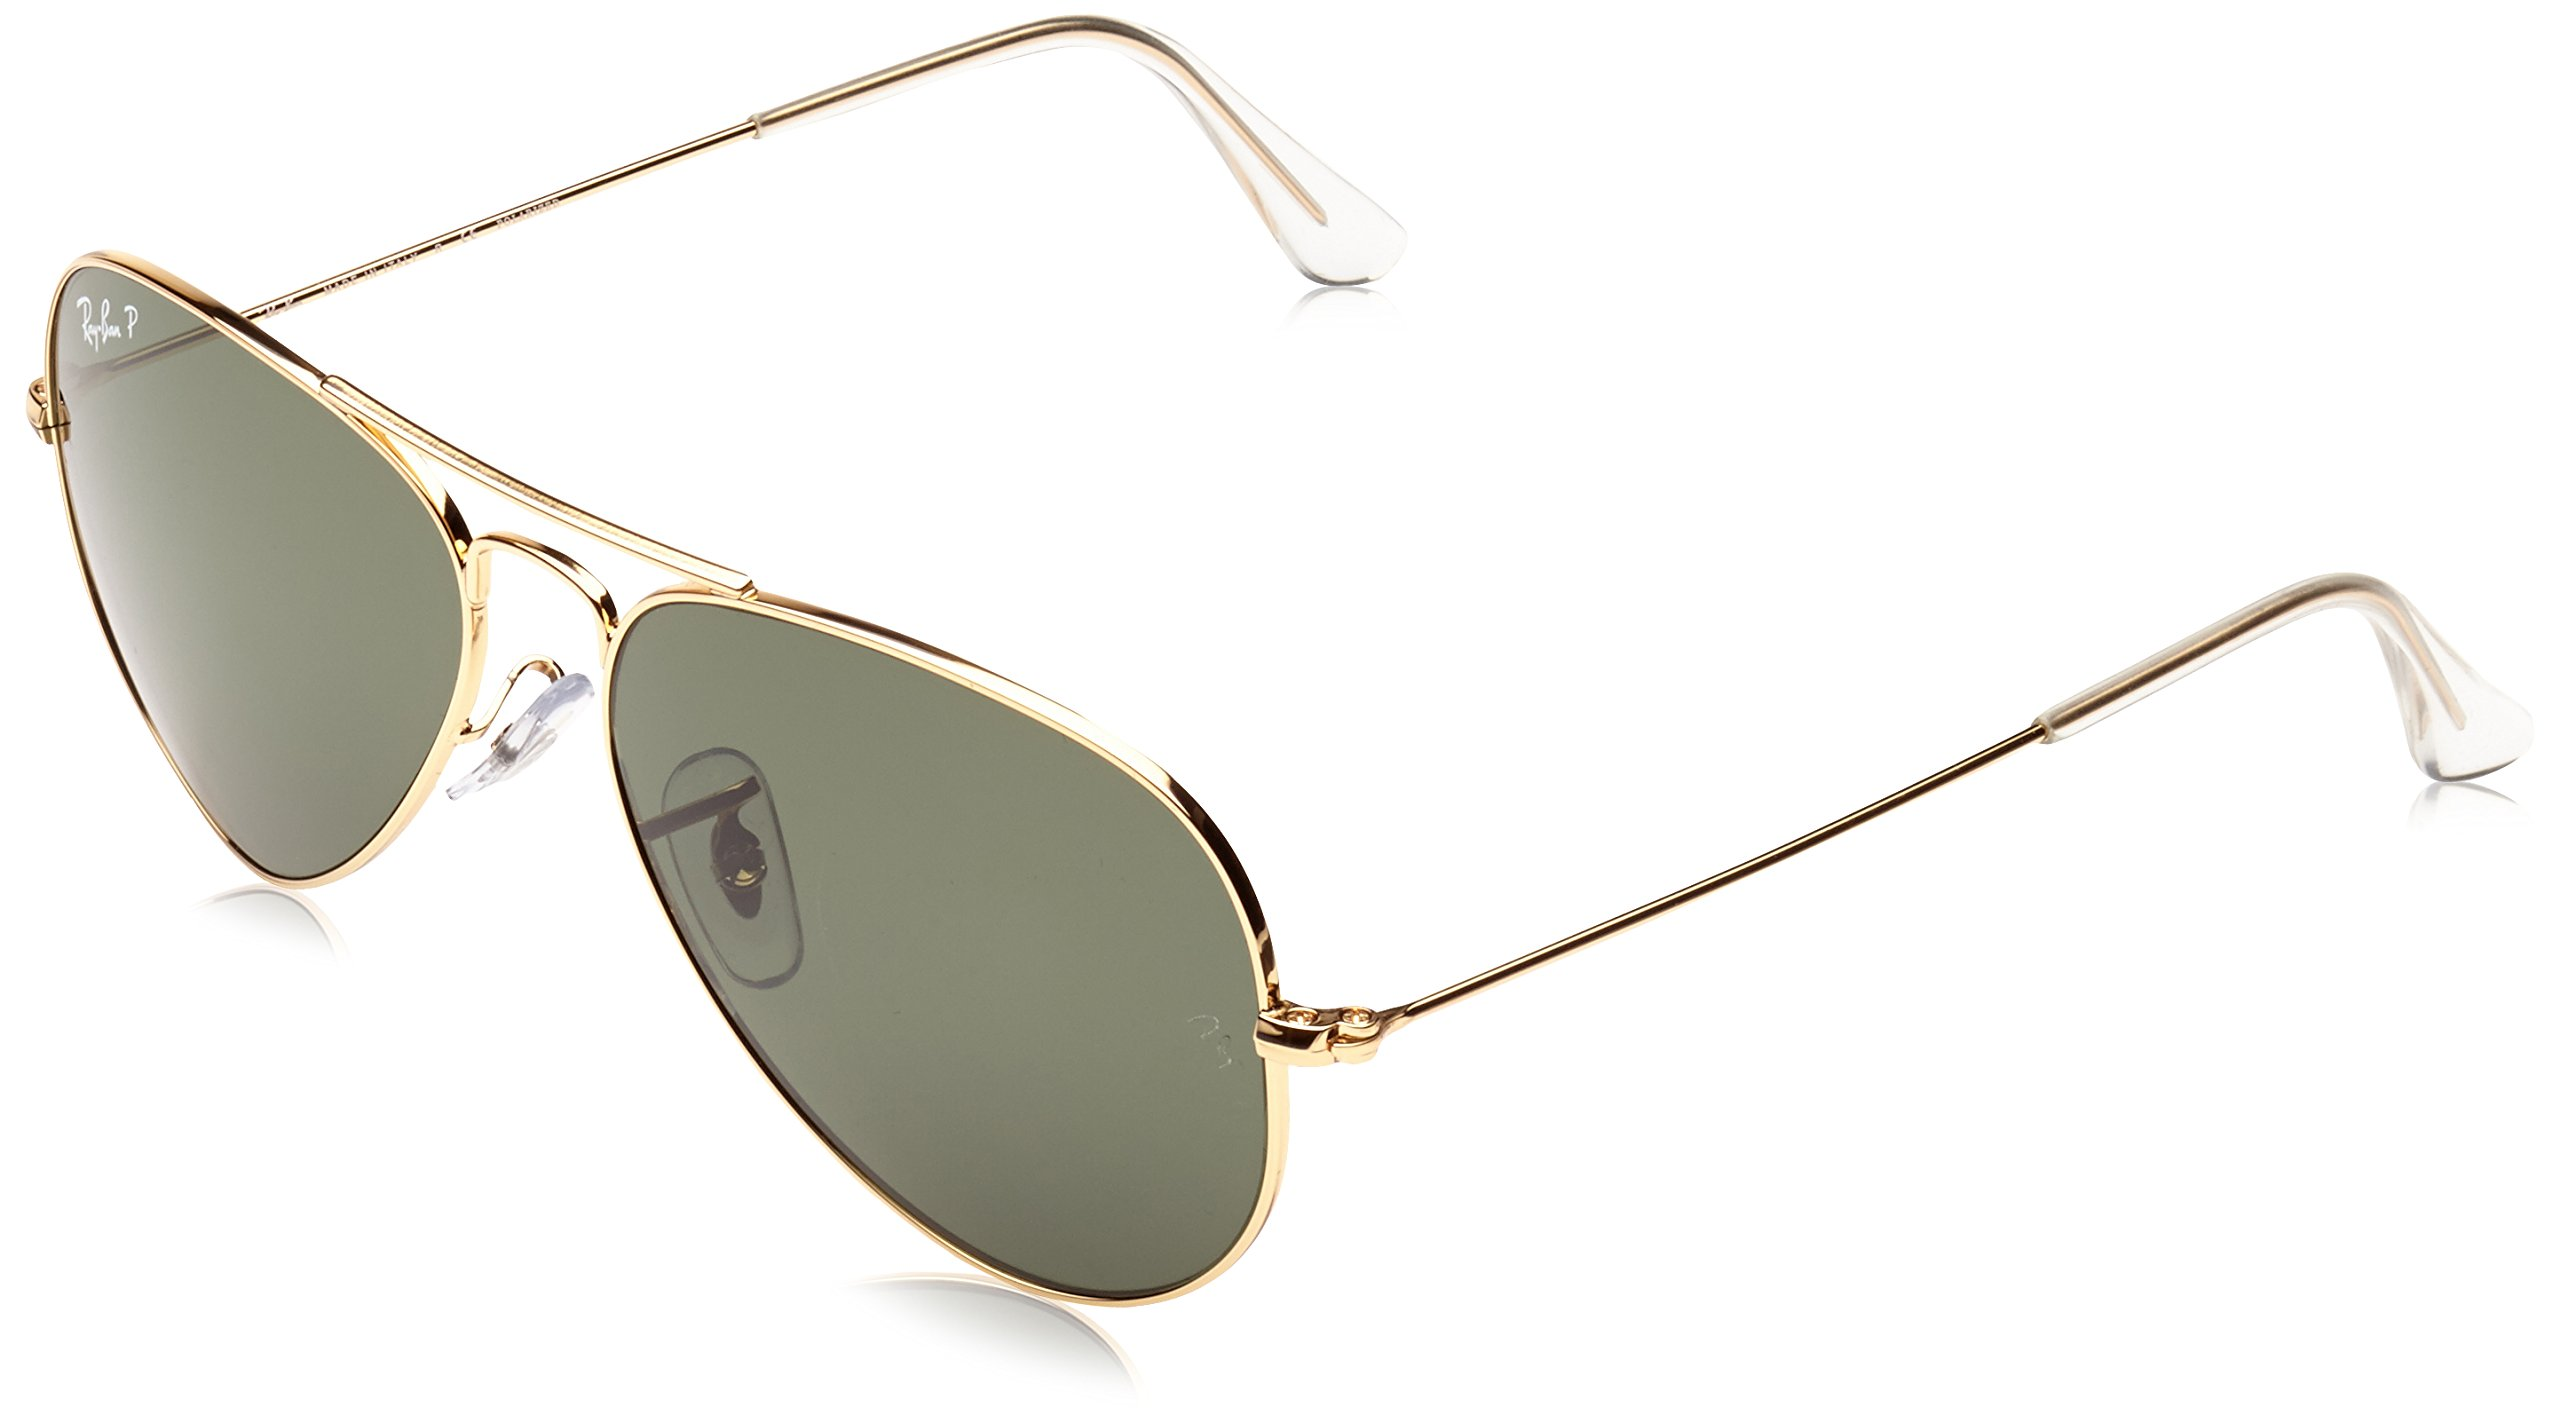 Ray-Ban 3025 Aviator Large Metal Non-Mirrored Polarized Sunglasses, Gold/Green, 55mm